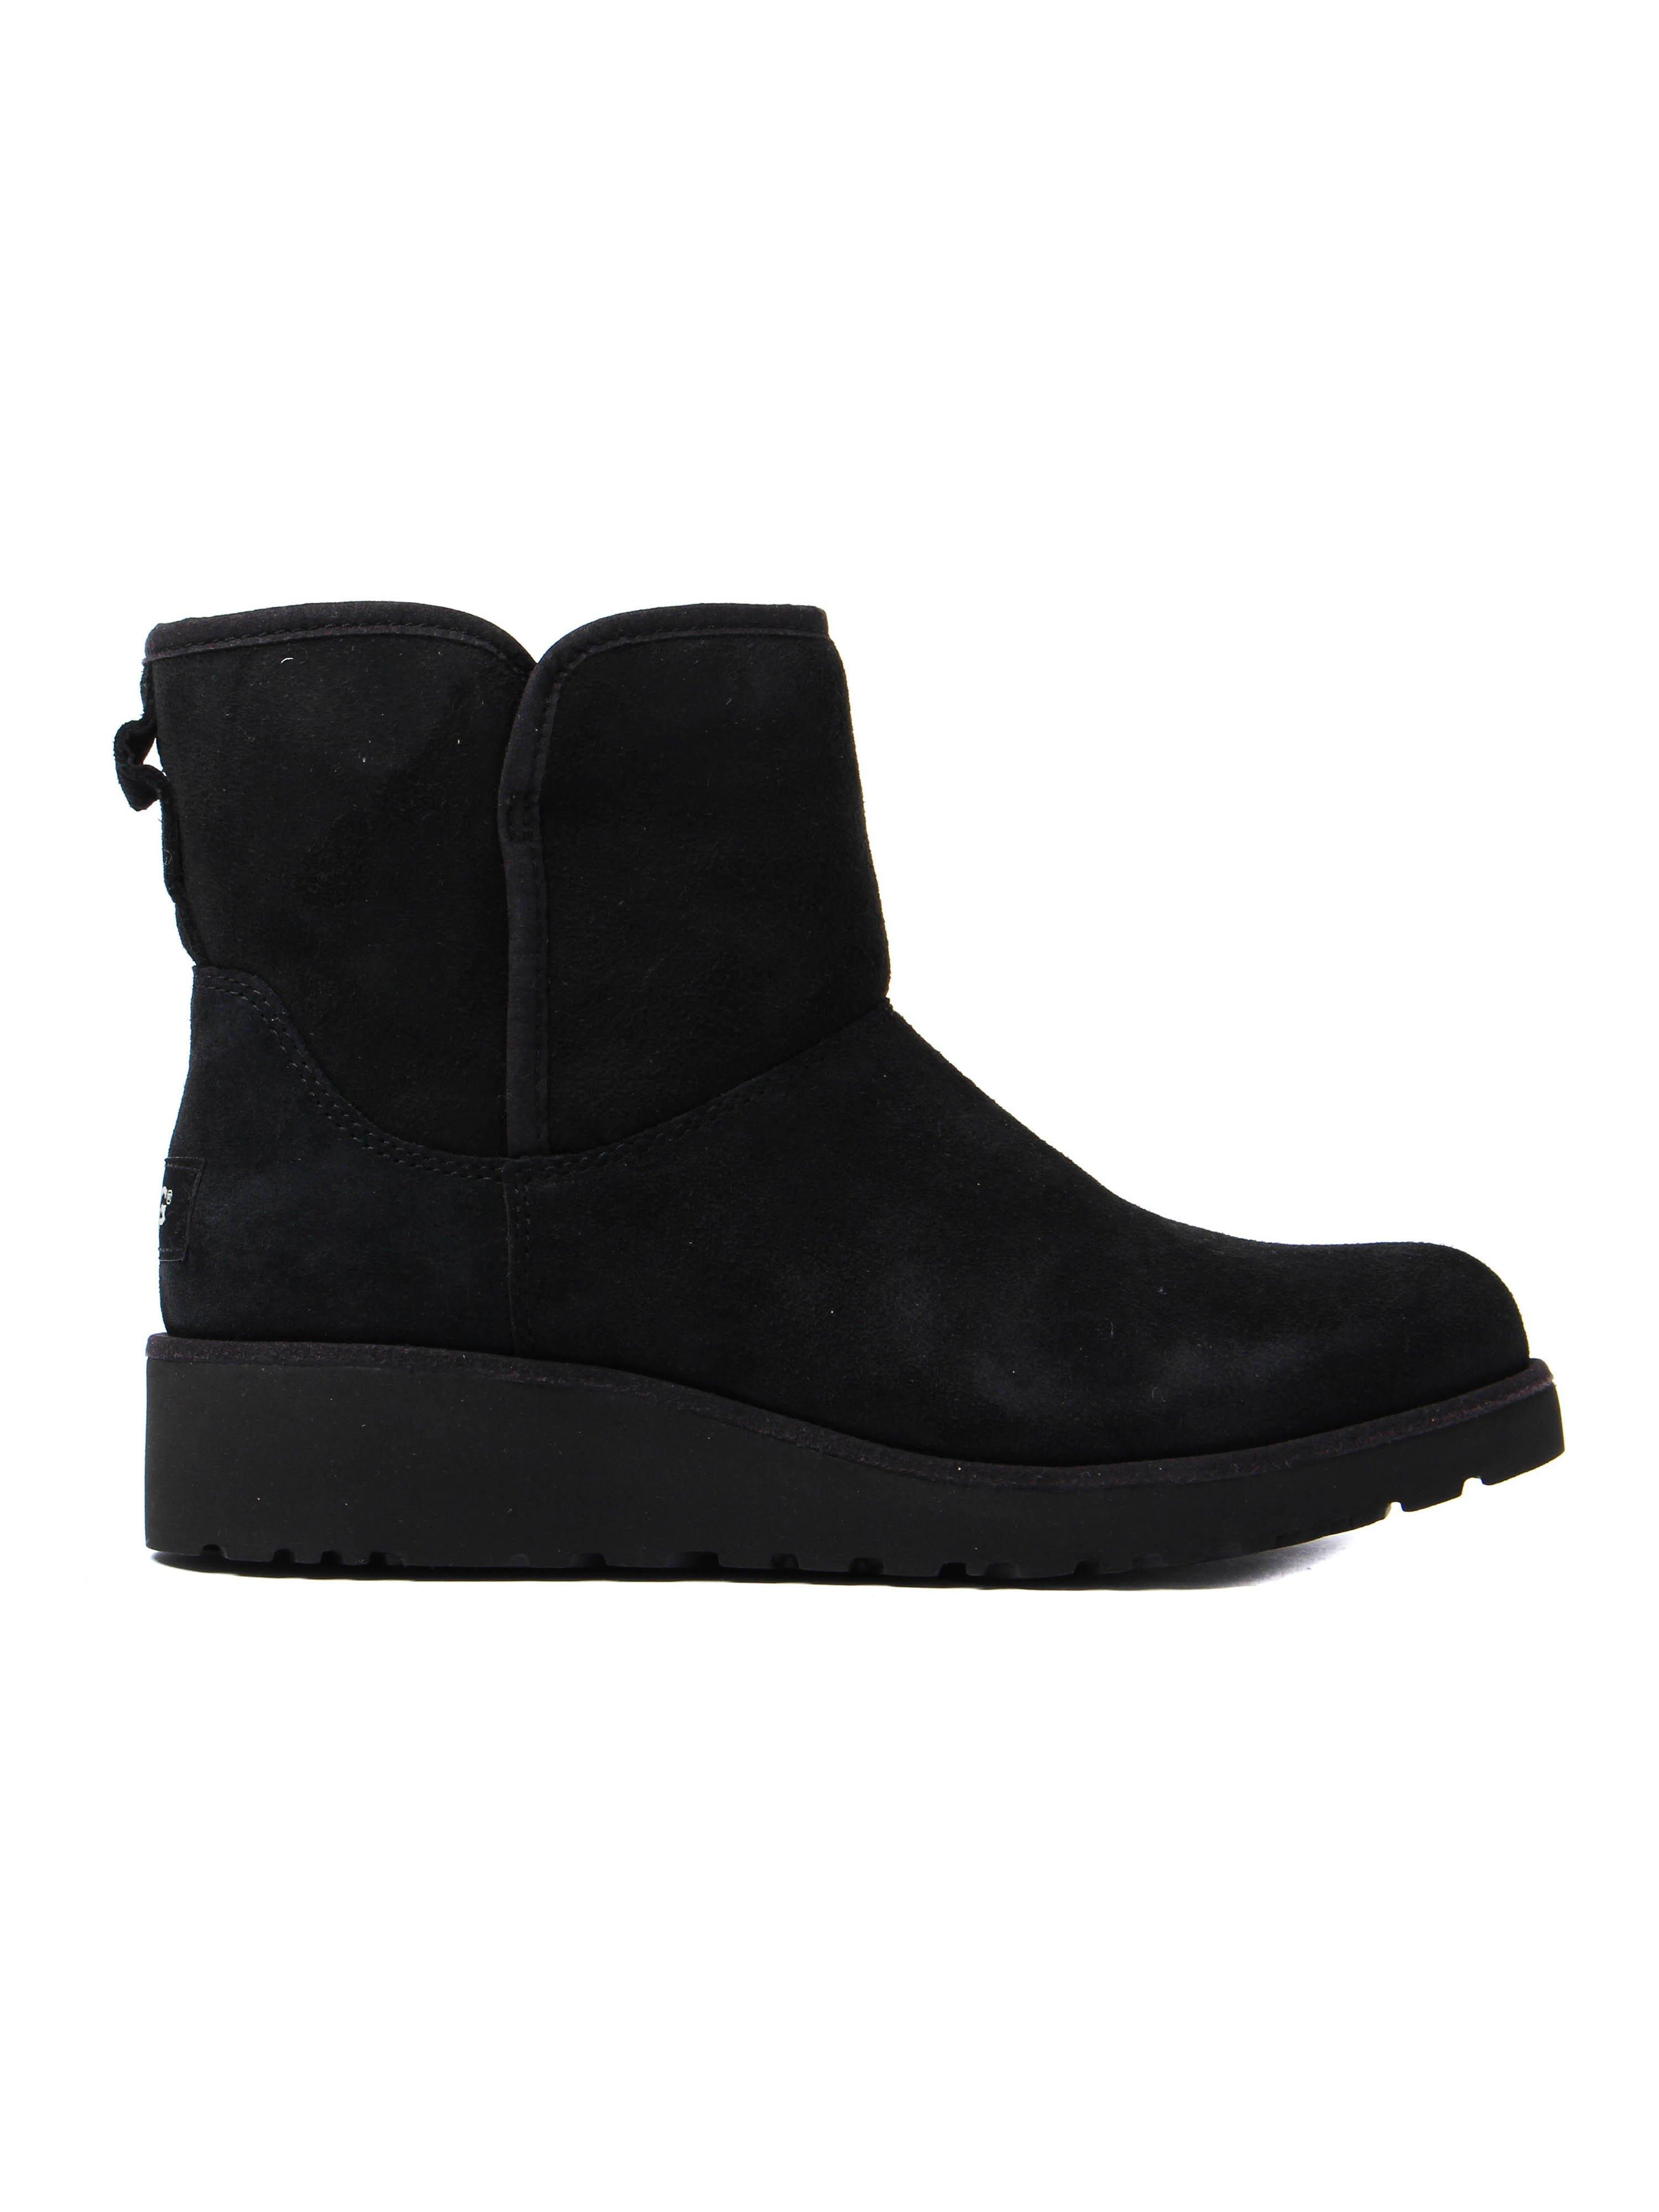 c77772c8384 Ugg Kristin Boots in Black | Lyst